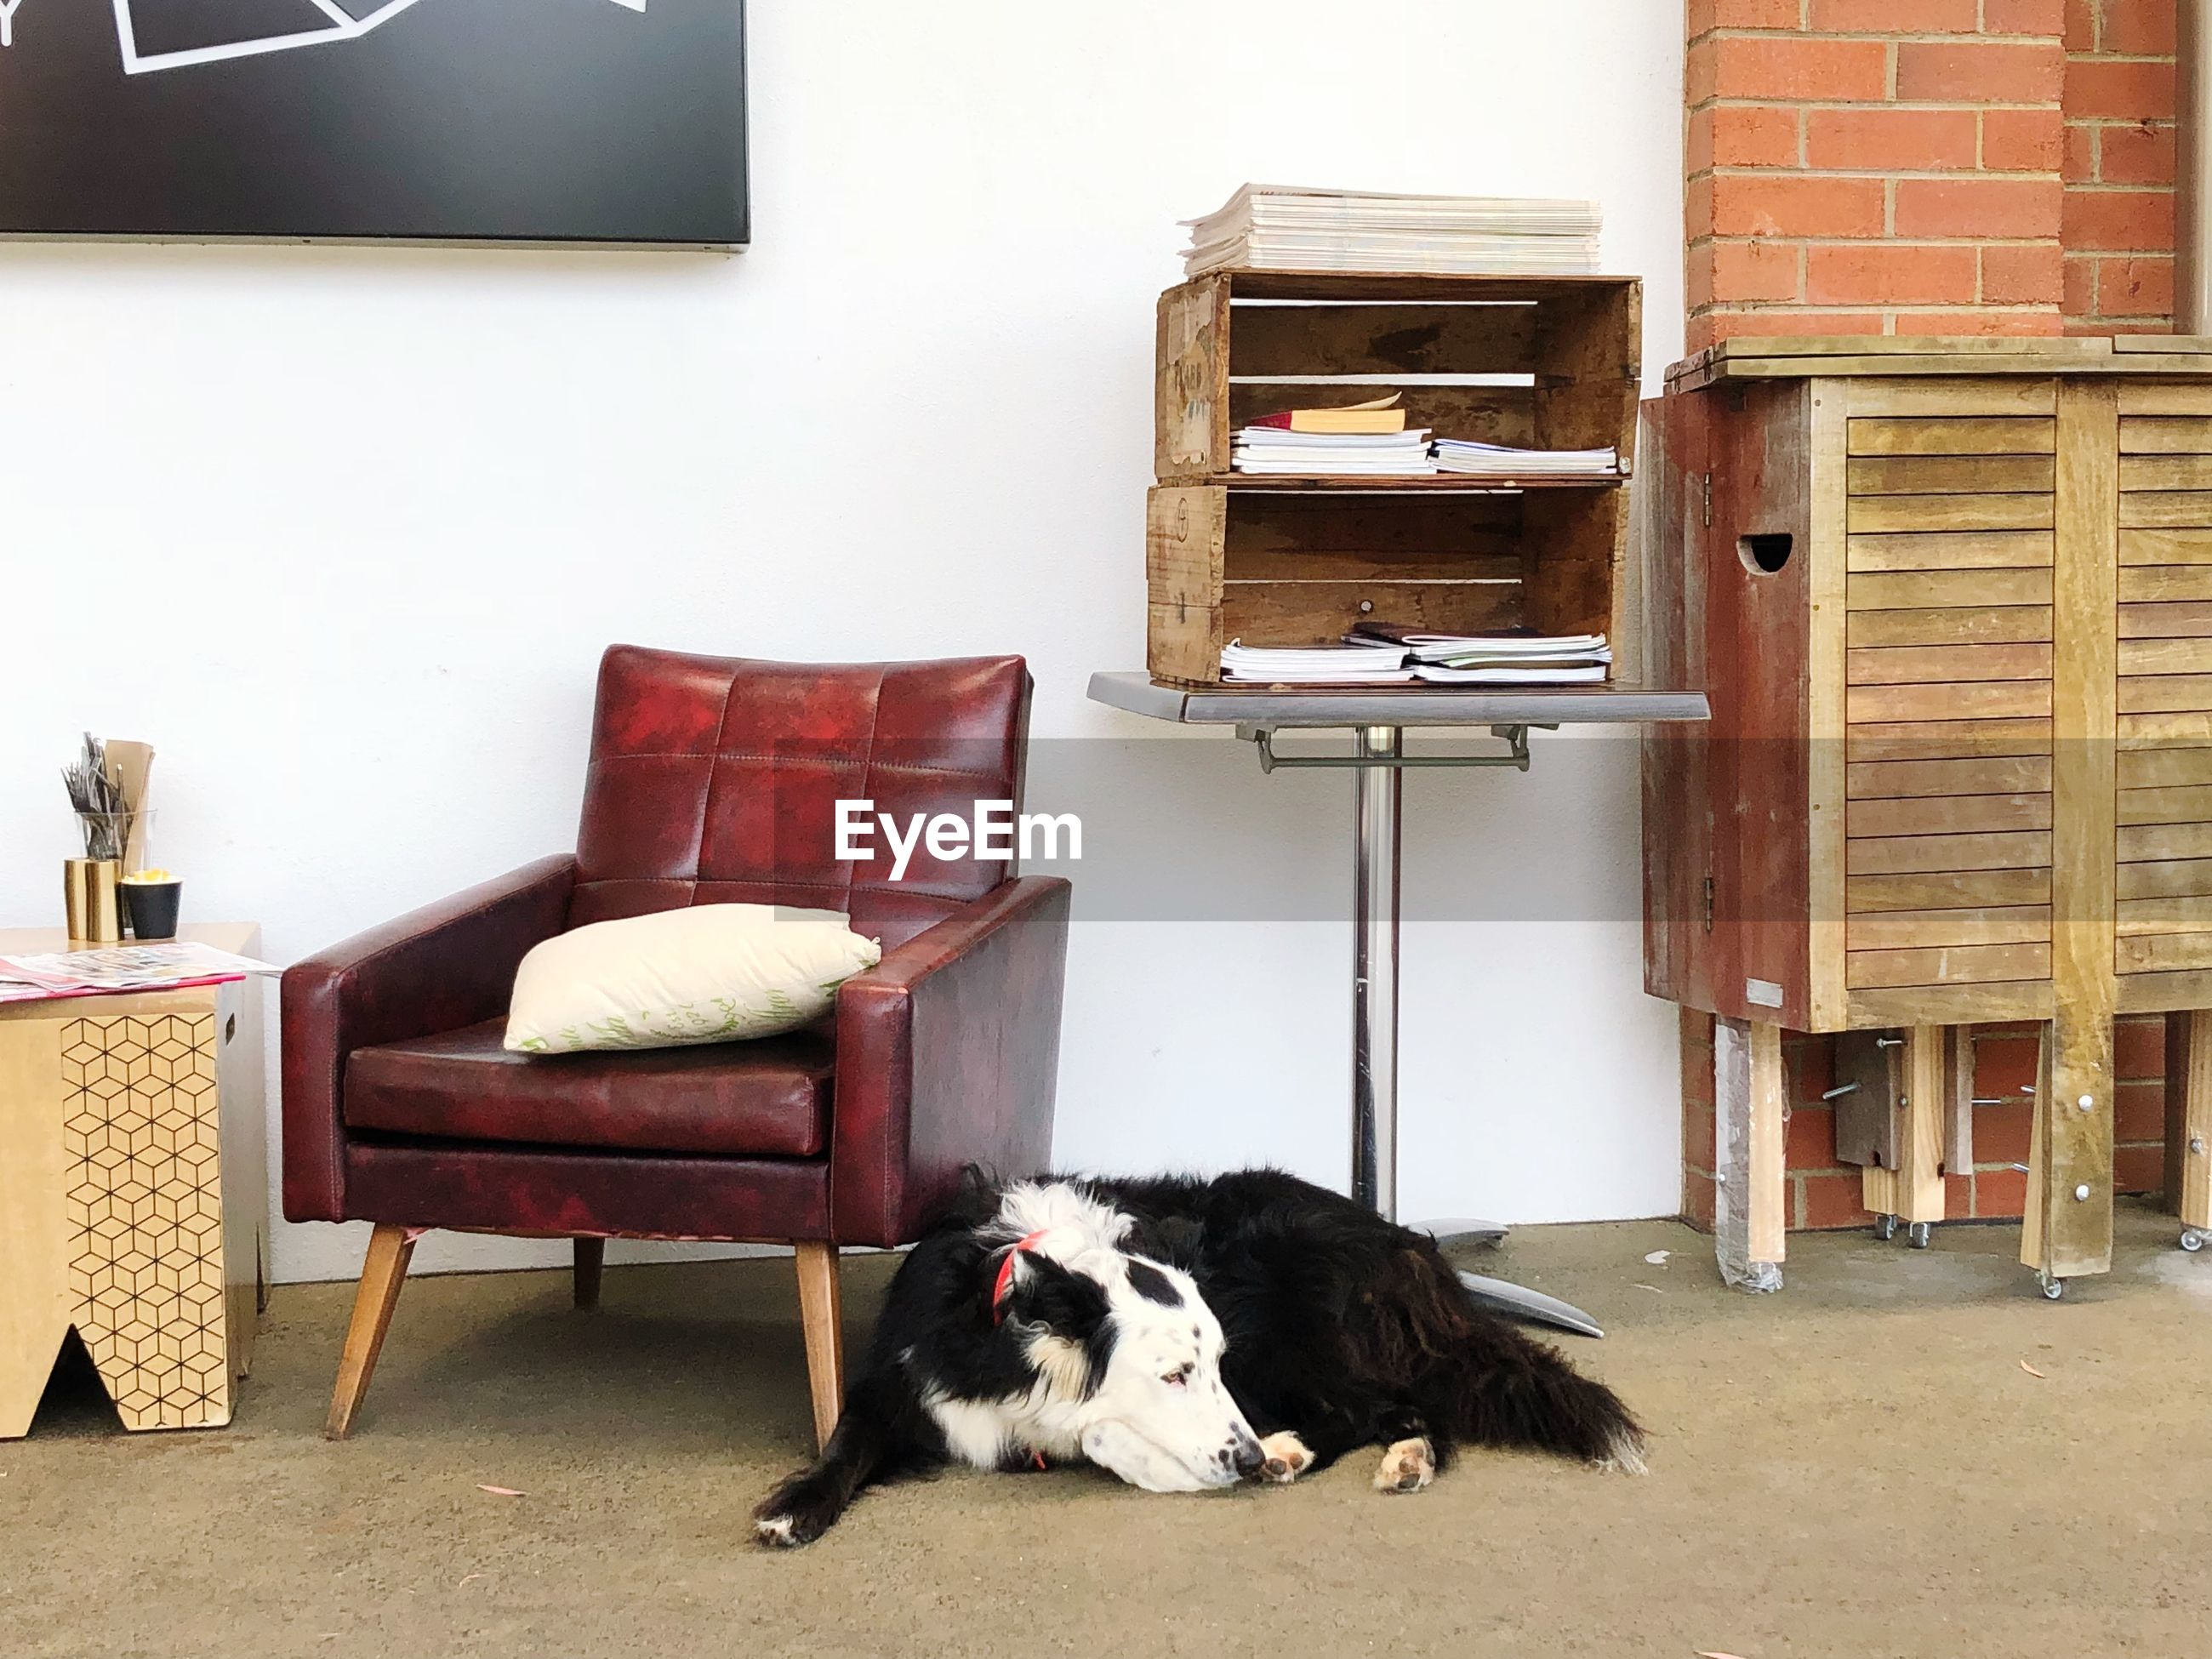 pets, domestic, mammal, domestic animals, chair, one animal, animal themes, seat, animal, relaxation, vertebrate, indoors, no people, home interior, domestic room, furniture, comfortable, resting, sofa, dog, flooring, border collie